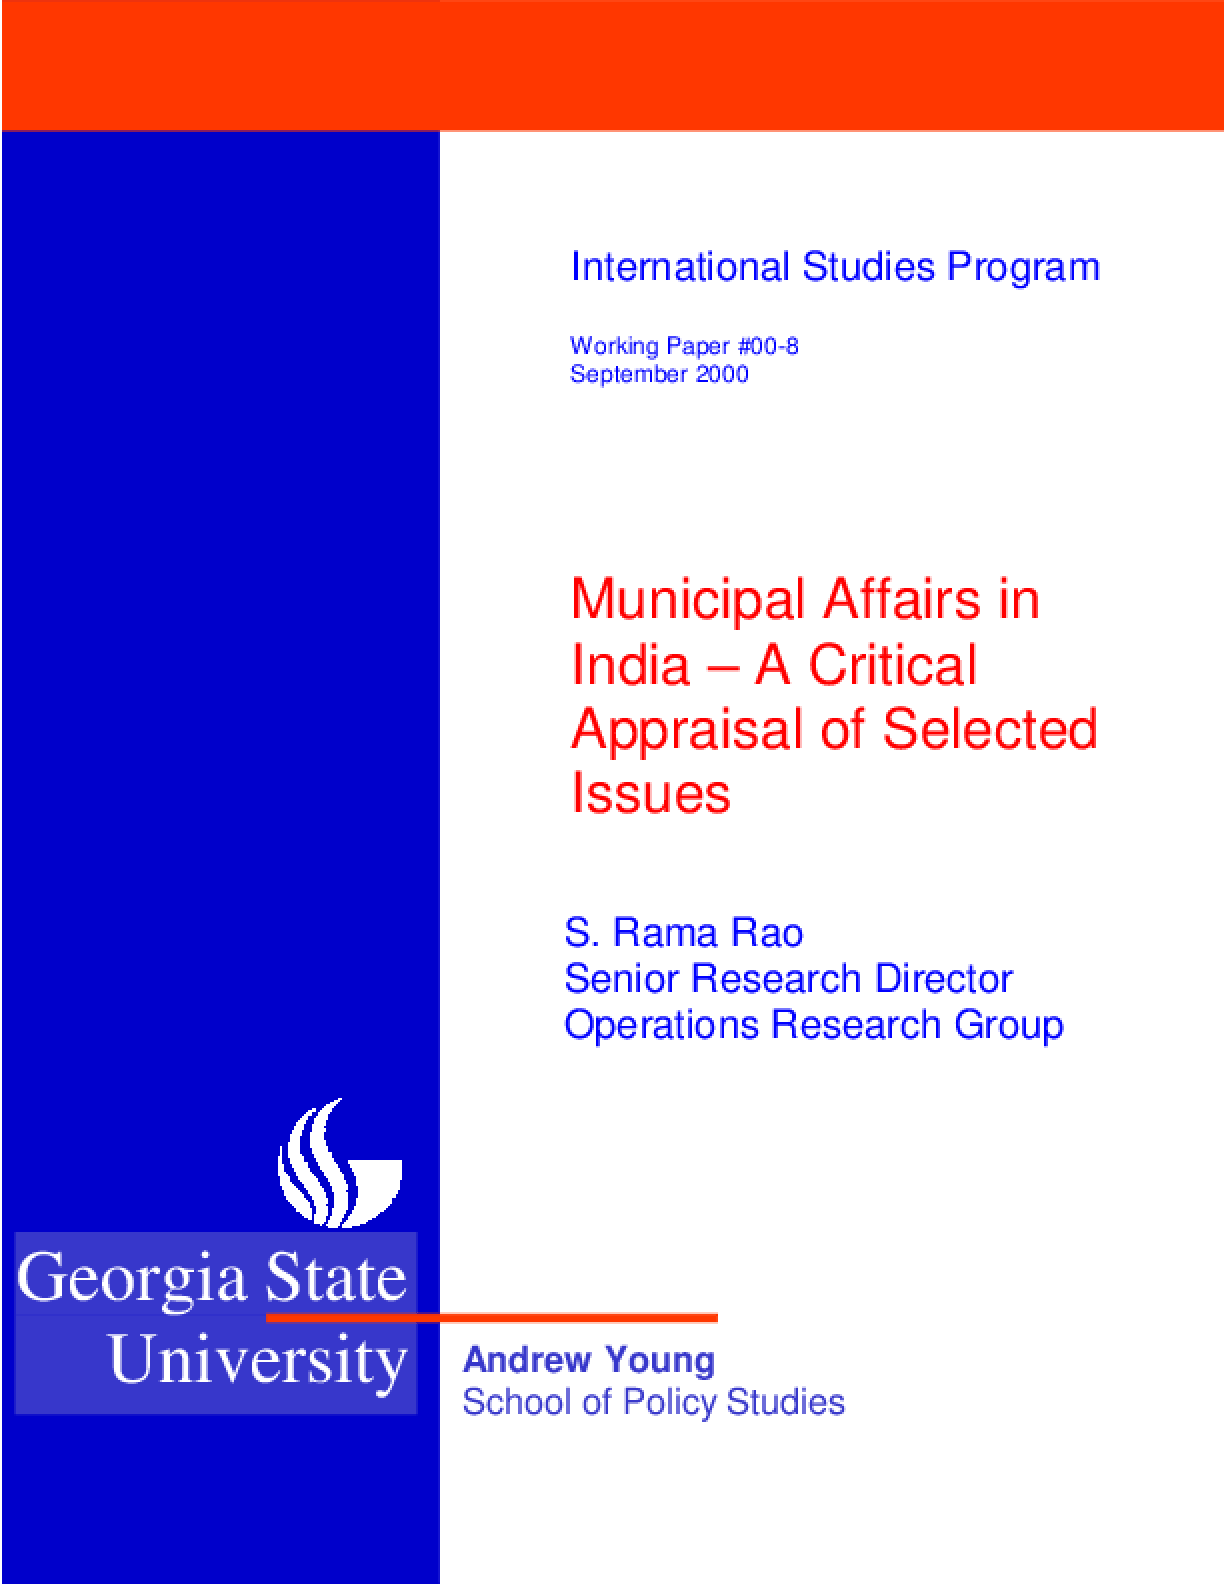 Municipal Affairs in India: A Critical Appraisal of Selected Issues